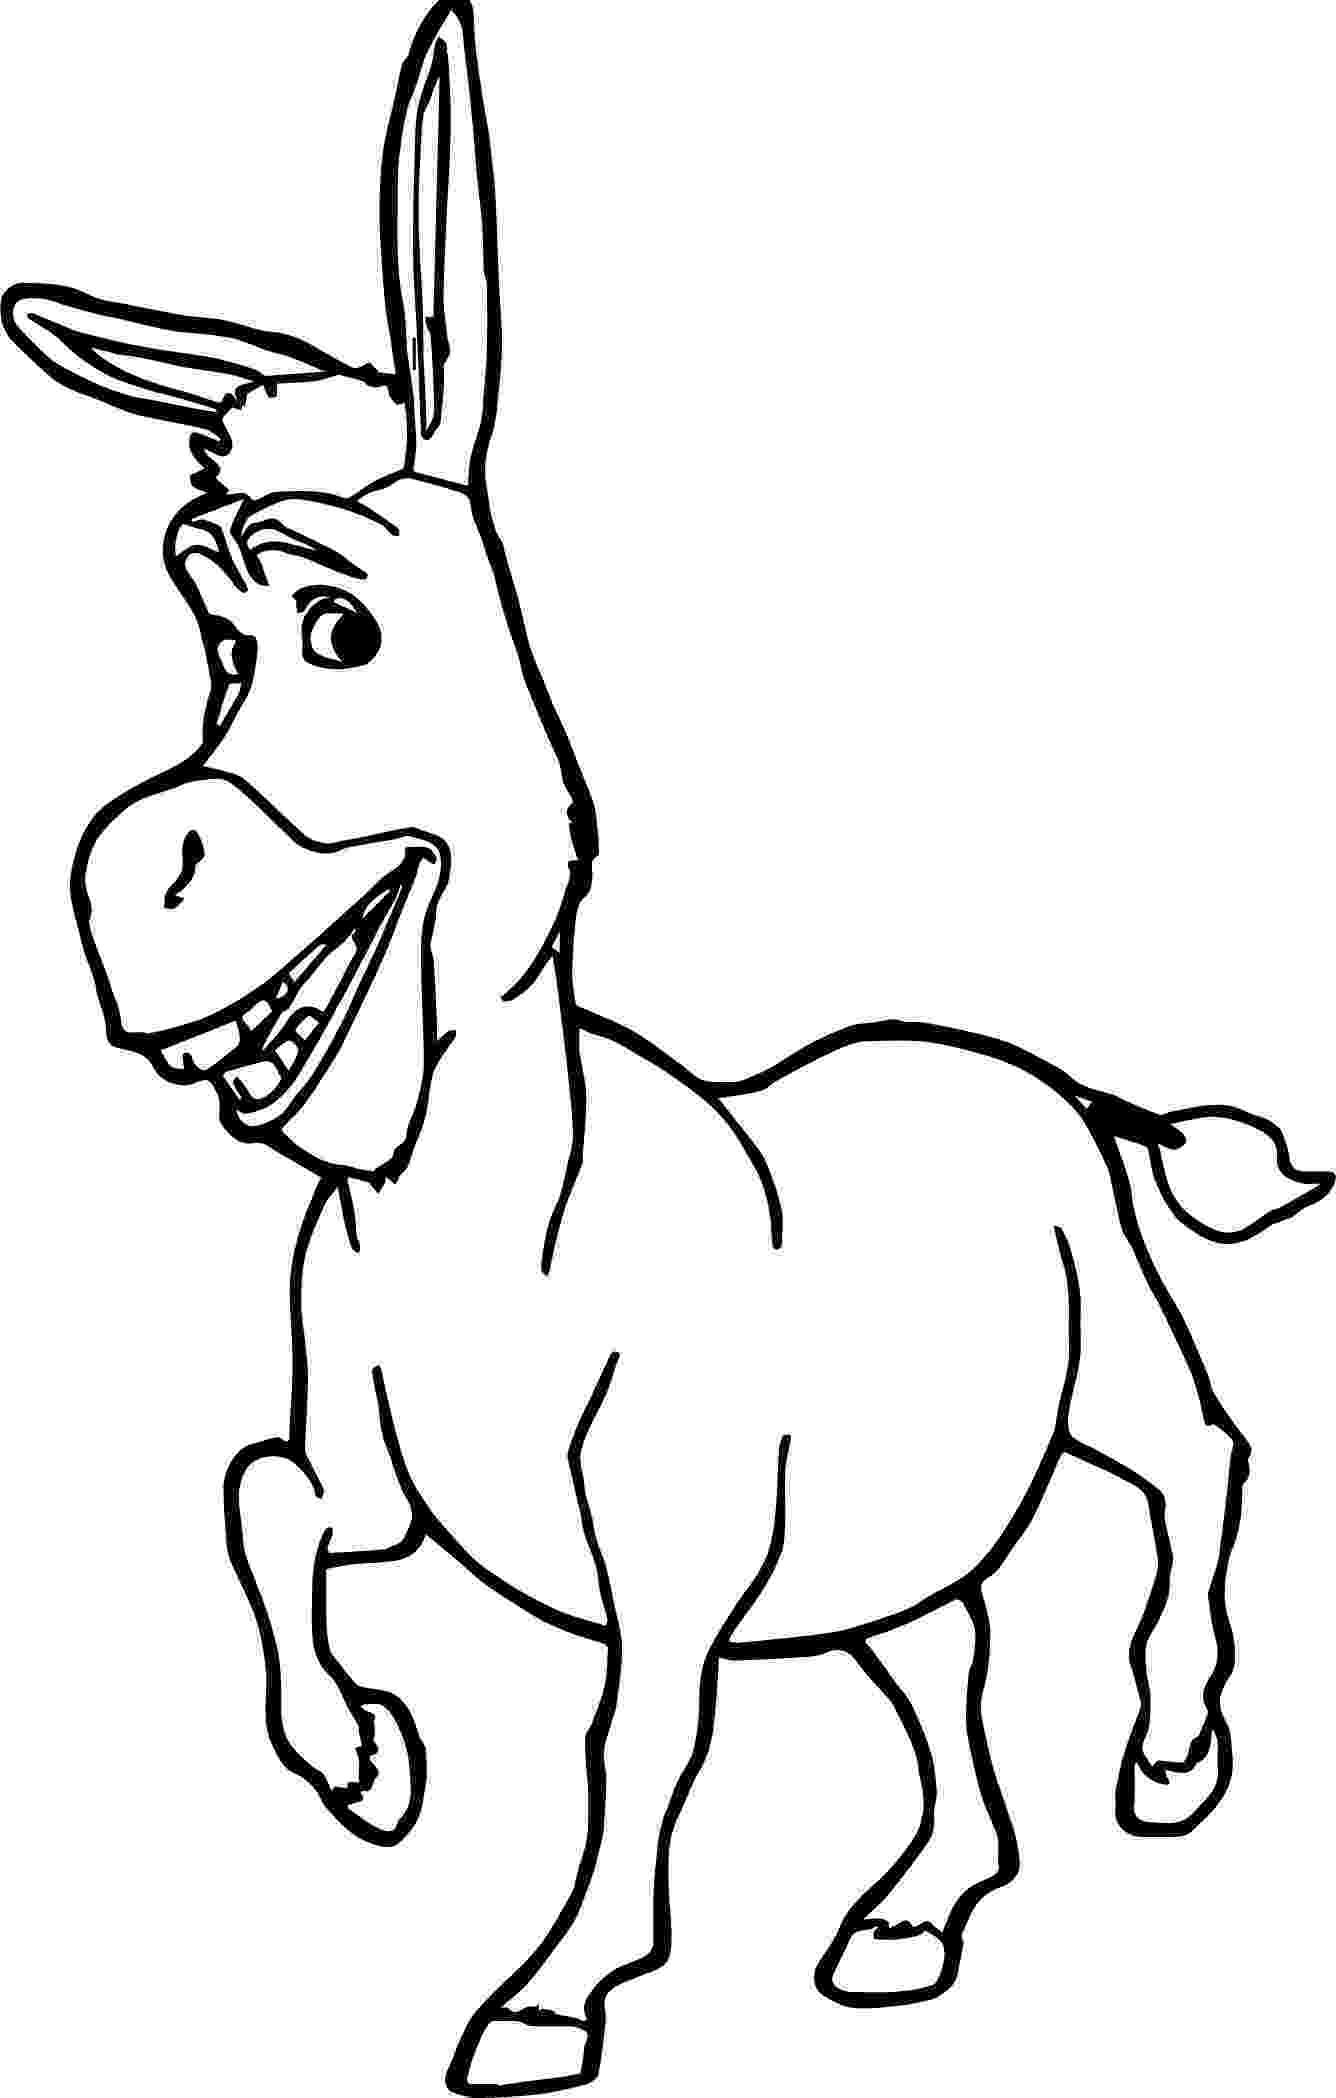 picture of a donkey to color donkey colouring page coloring page book for kids of a donkey to picture color